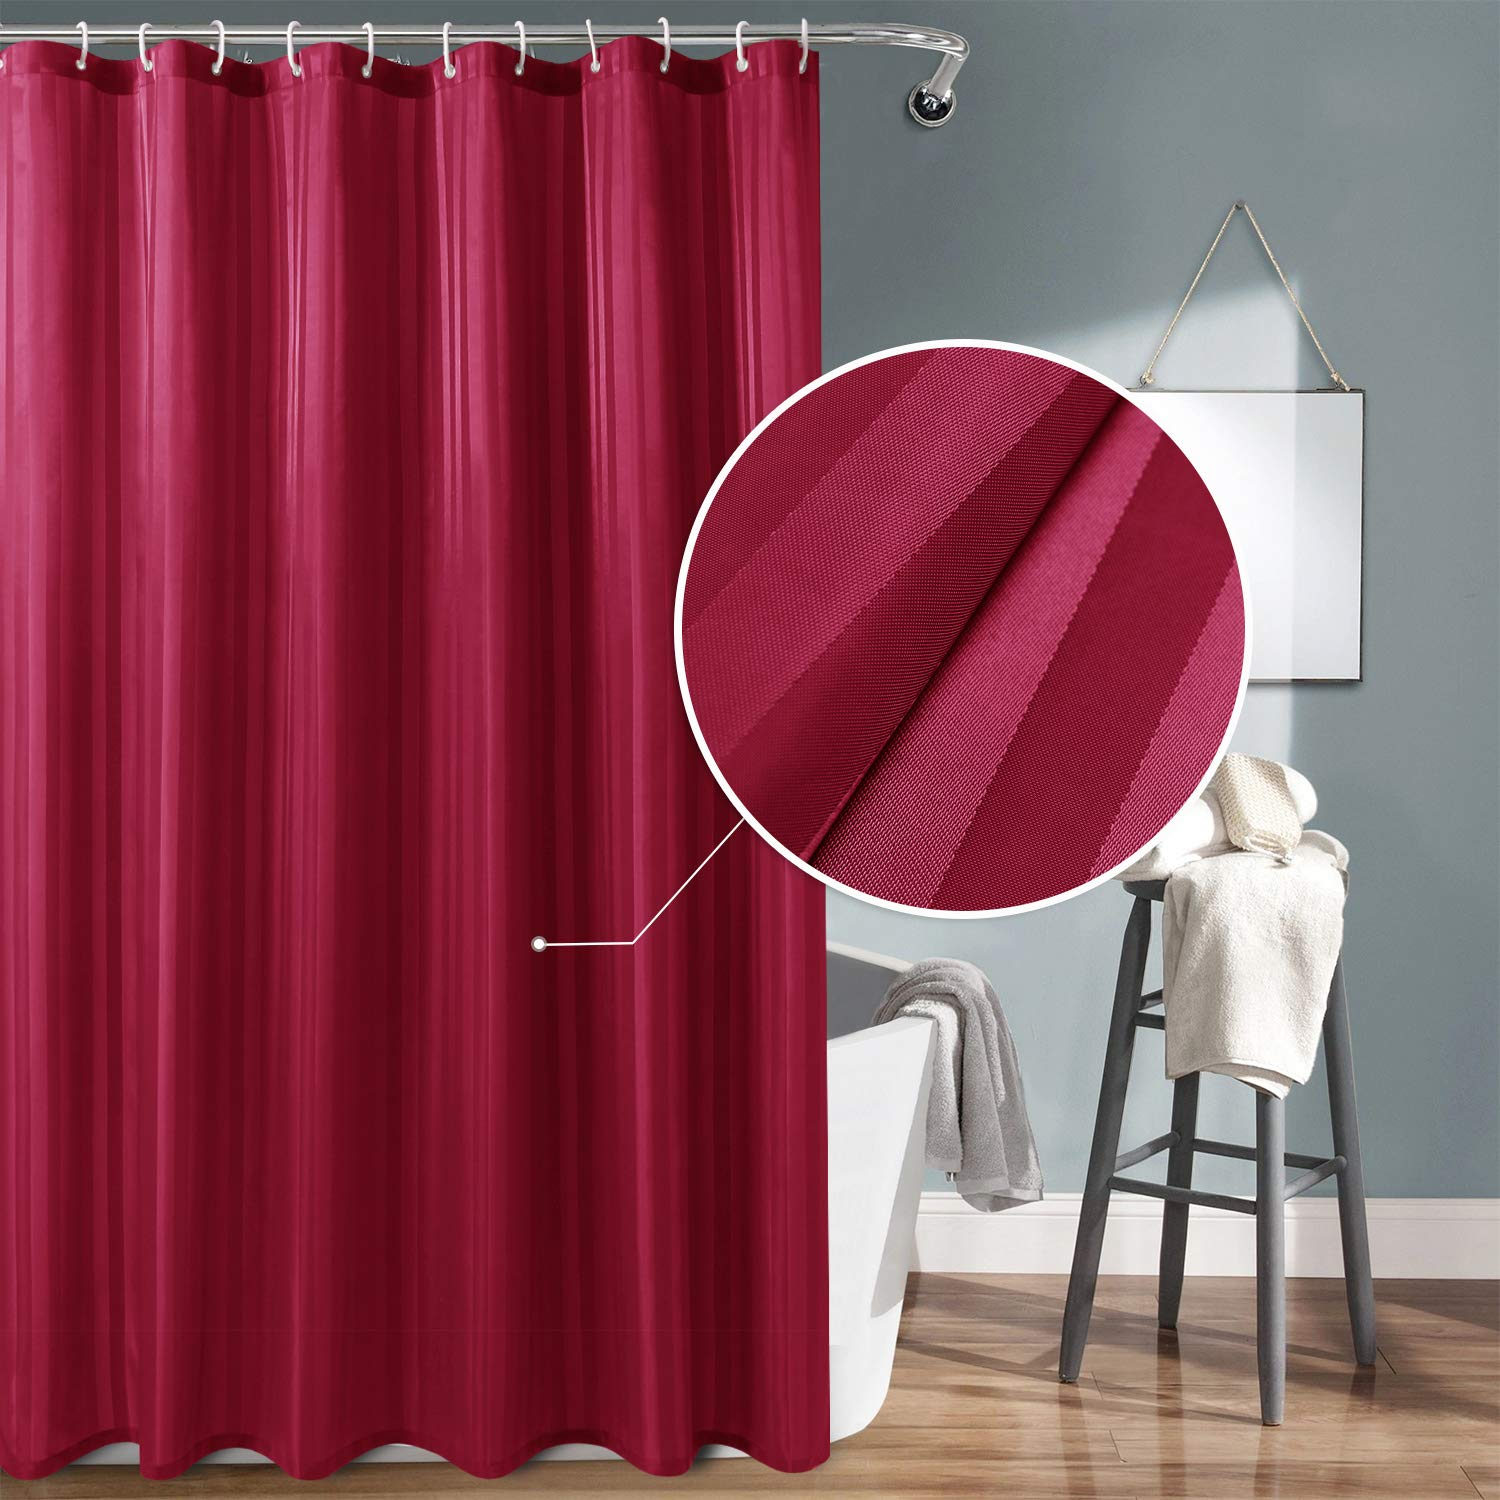 DWCN Burgundy Fabric Shower Curtain with Hooks - Stripe Patterned Water Repellent Bathroom Shower Curtain 72 x 78 Extra inches Long with Magnets